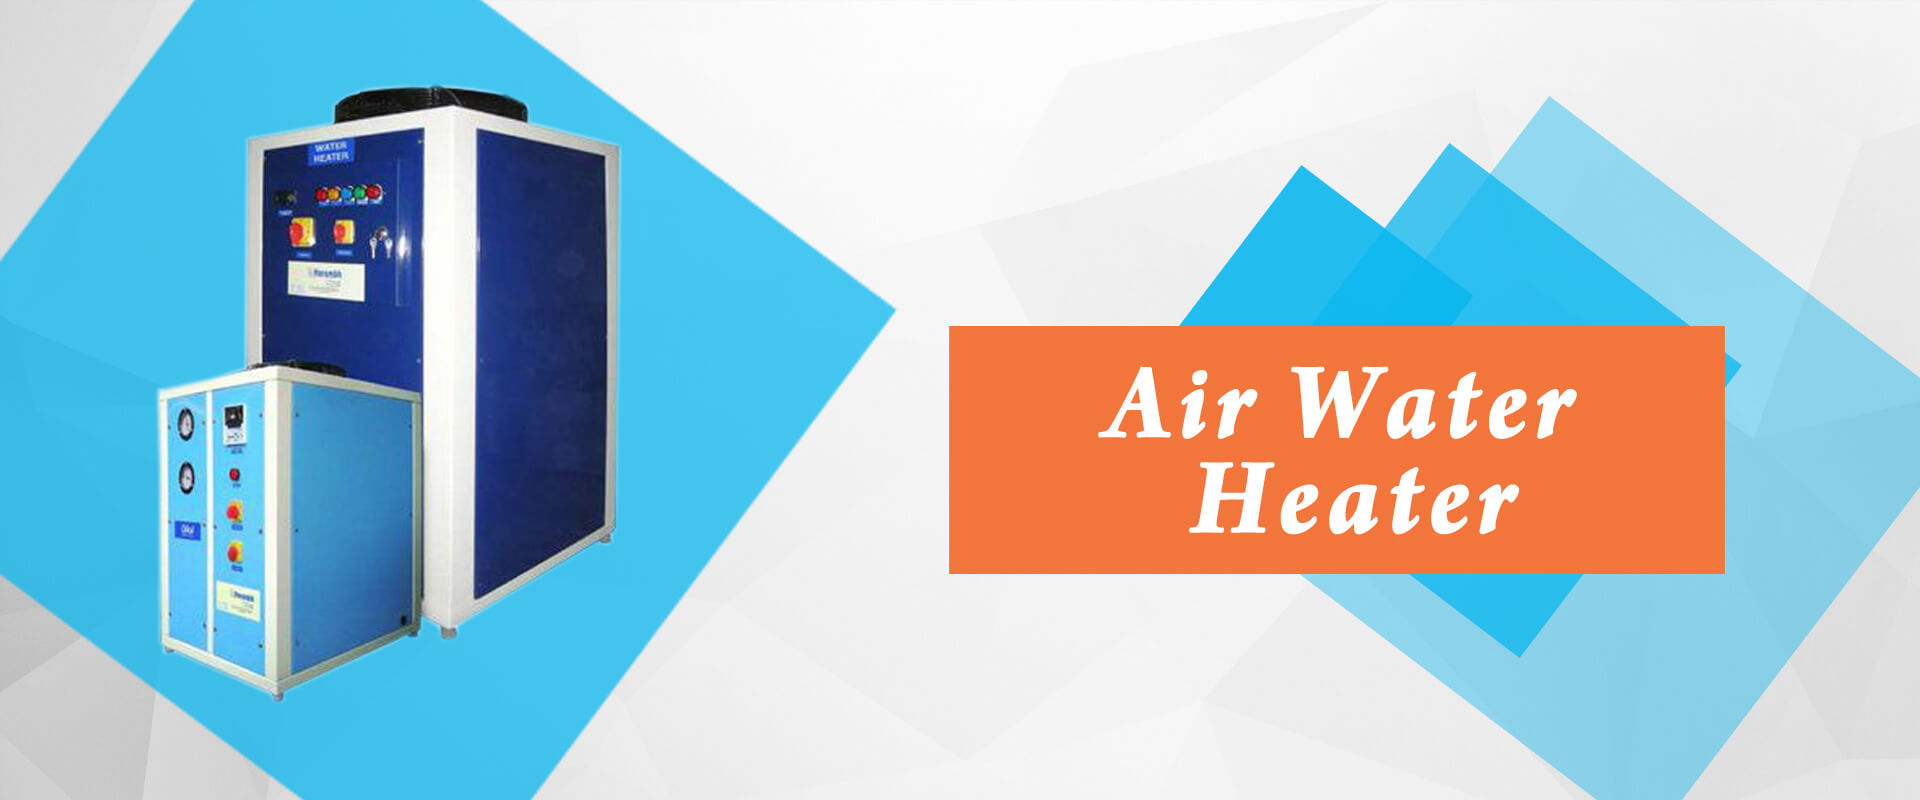 Air Water Heater